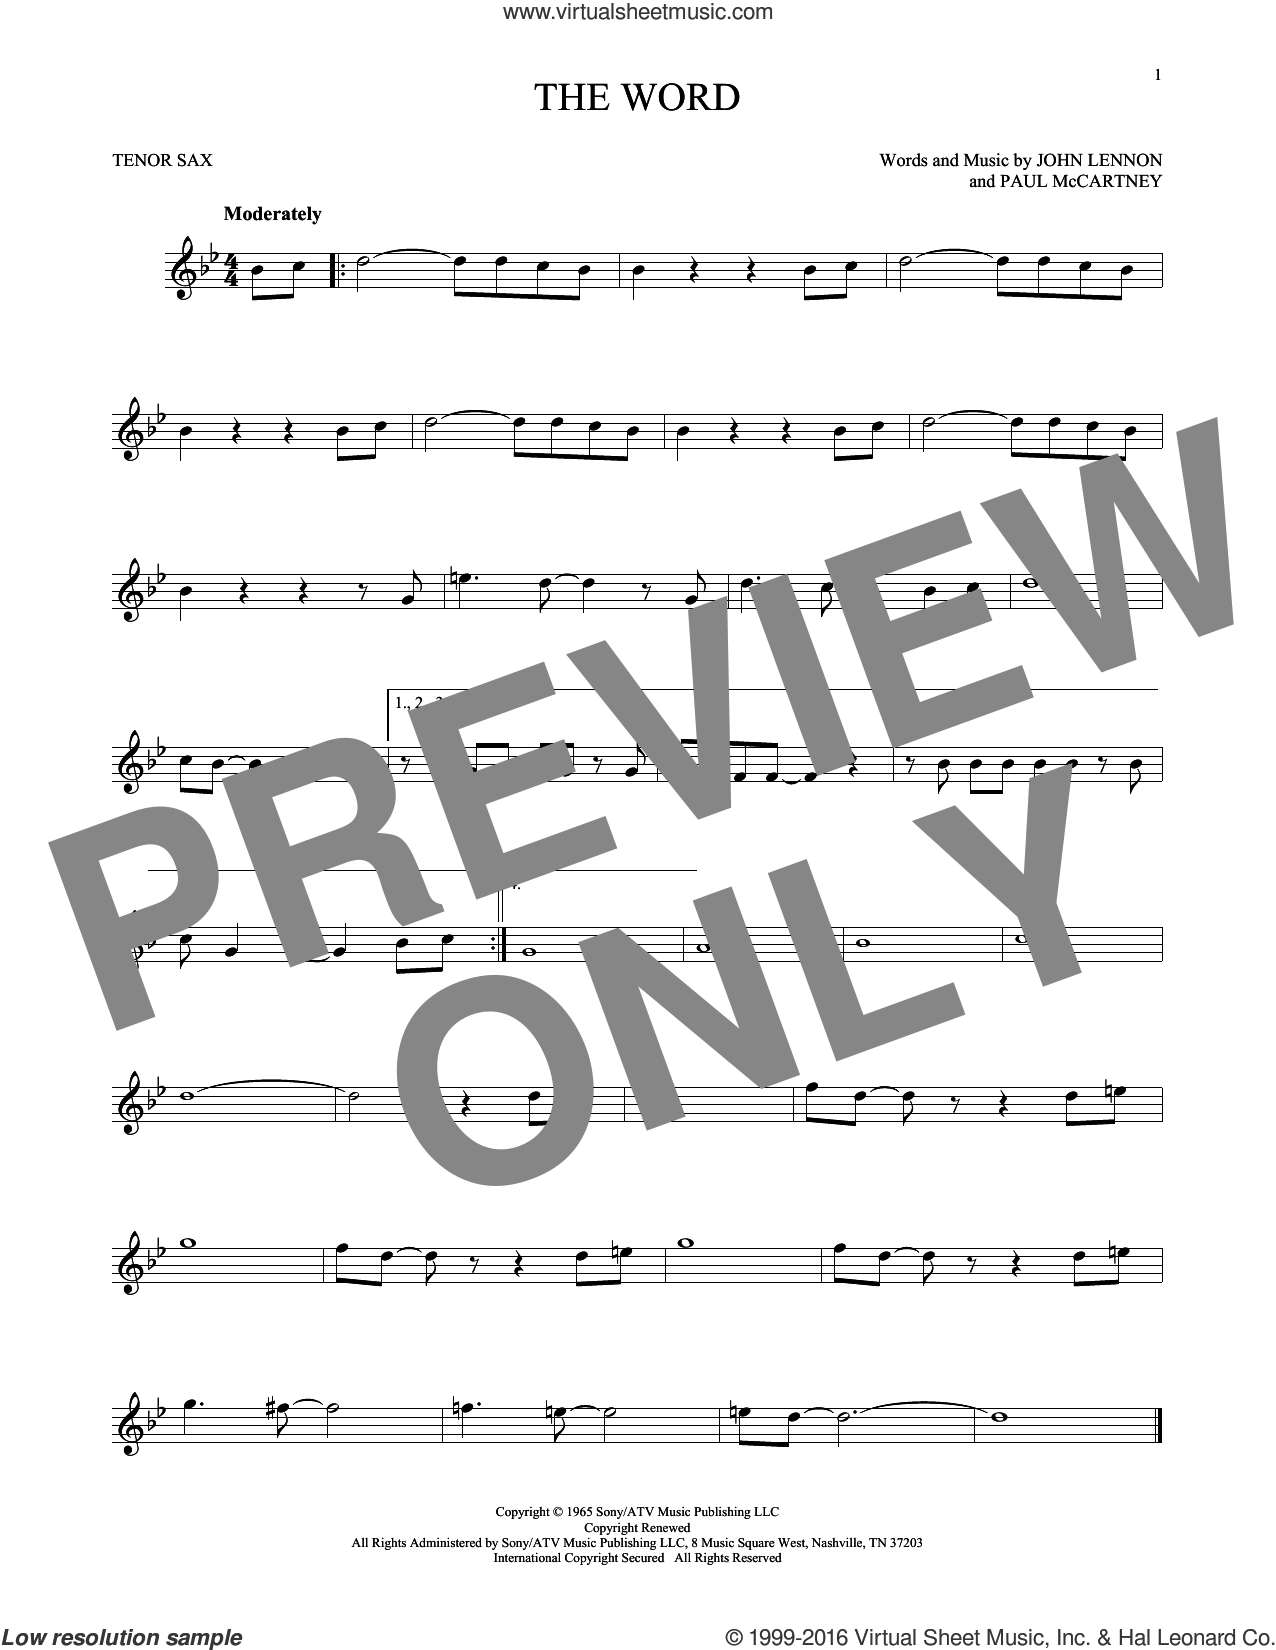 The Word sheet music for tenor saxophone solo by Paul McCartney